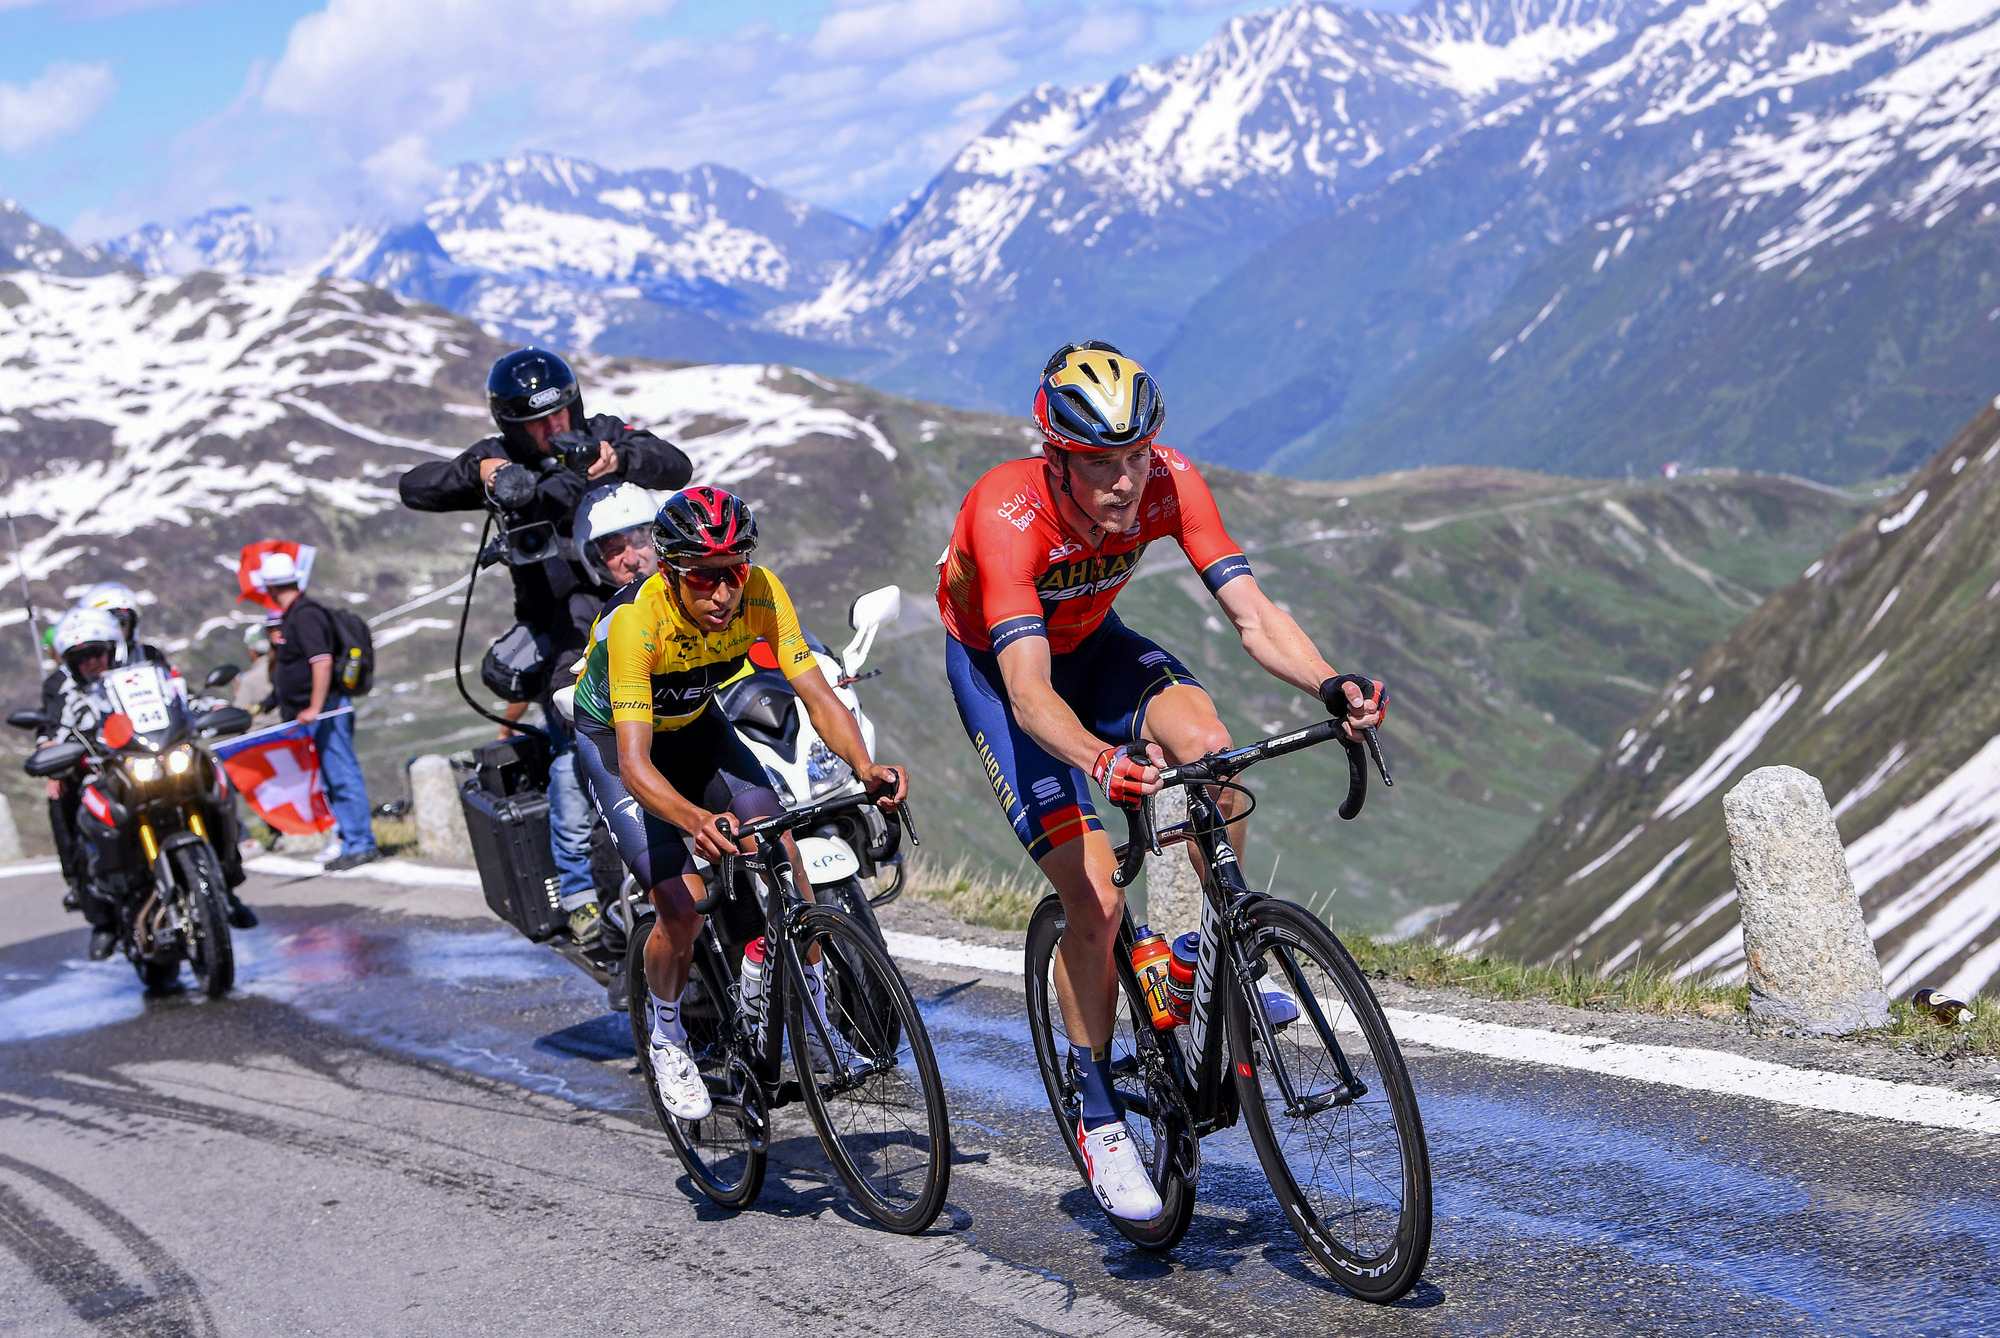 http://teambahrainmerida.com/rohan-dennis-second-on-the-queen-stage-and-second-overall-at-the-tour-de-suisse/